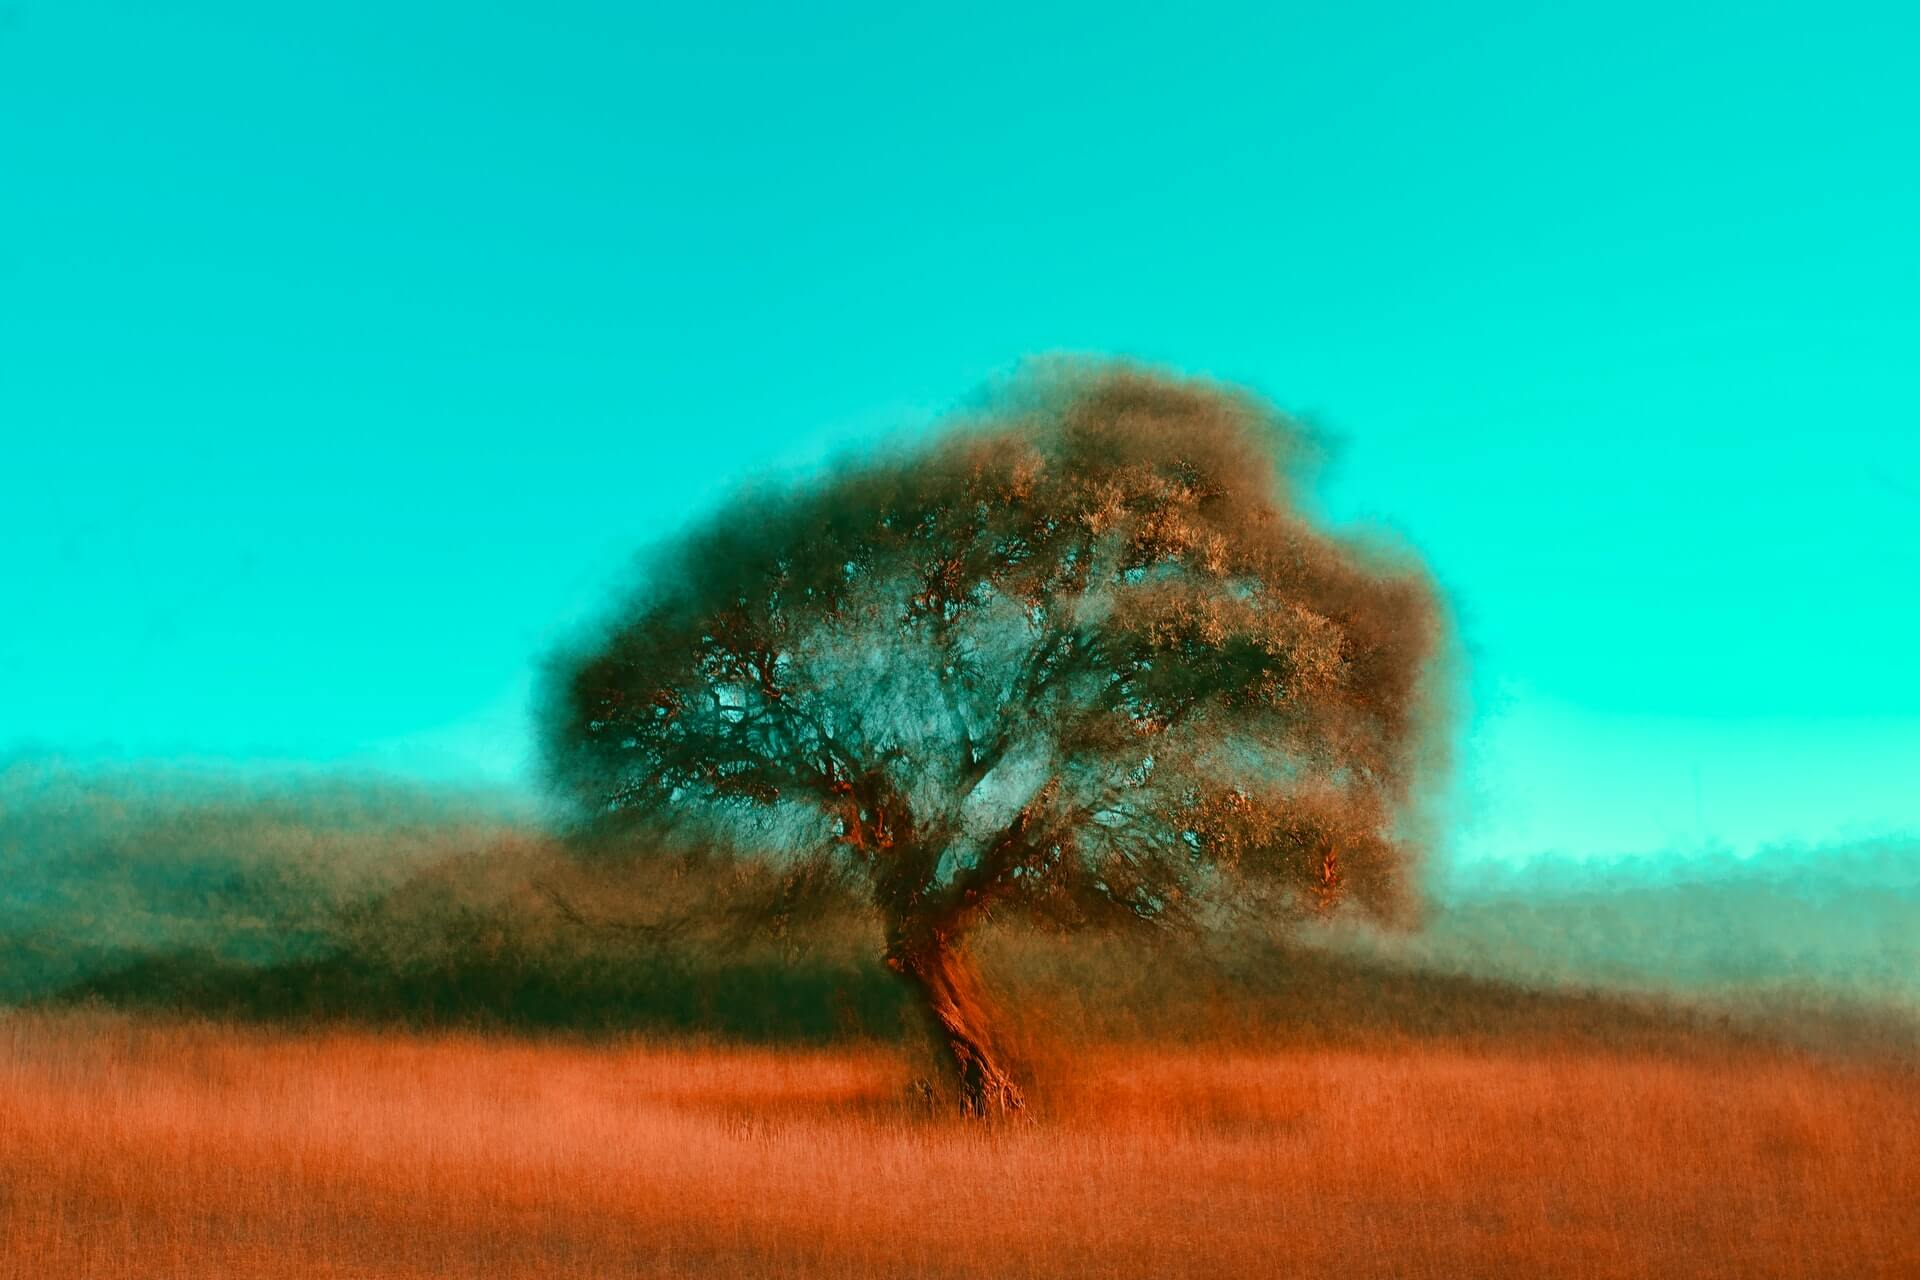 Tree in the country. Alone in the midst of beauty.